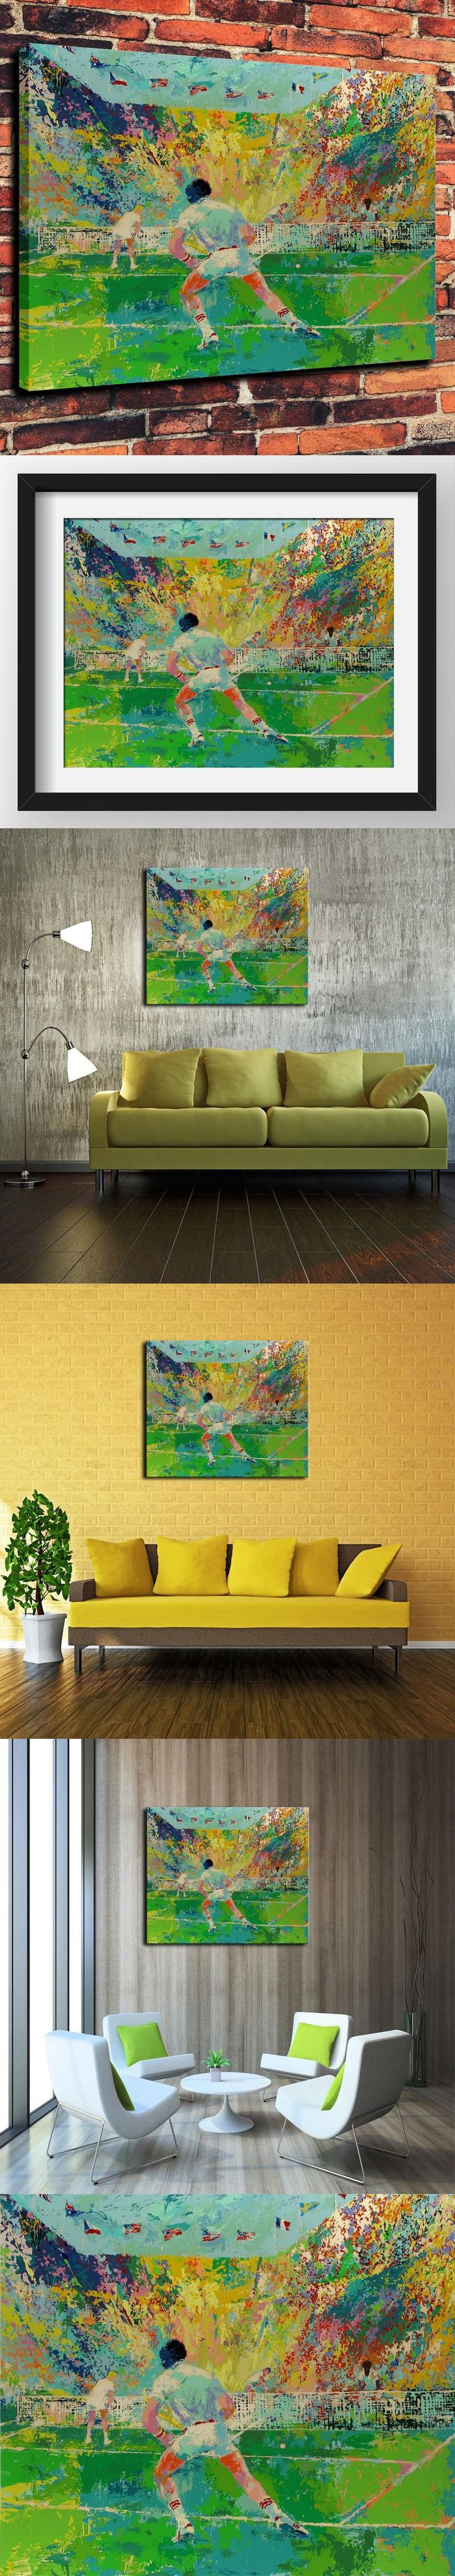 Canvas Artwork Prints Watercolor Oil Painting for Western Home Decor Which Badminton Courts By LeRoy Neiman Painted( No Framed ) $30